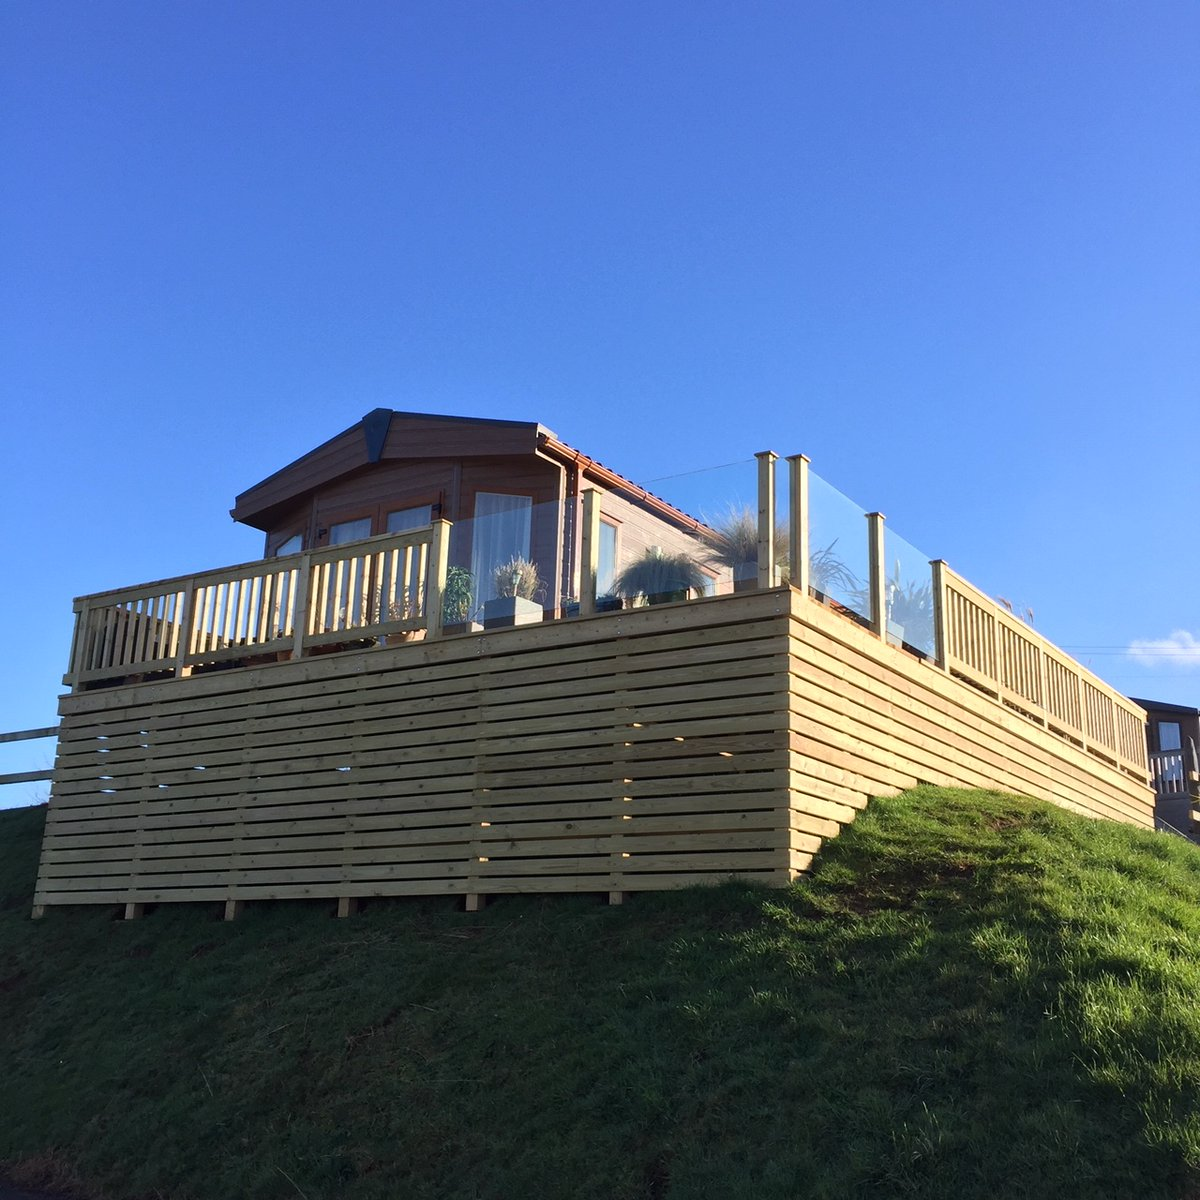 We love this new decking on the @pembertonlh up on Exmoor View, that the @StAudriesBay on-site carpenter has just completed. http://ow.ly/H7dv30qbGjY #pemberton #lodge #holidaypark #decking #inthesun #amazingviews #views #carpenter #chillout #roomwithaviewpic.twitter.com/35ge8goe6x